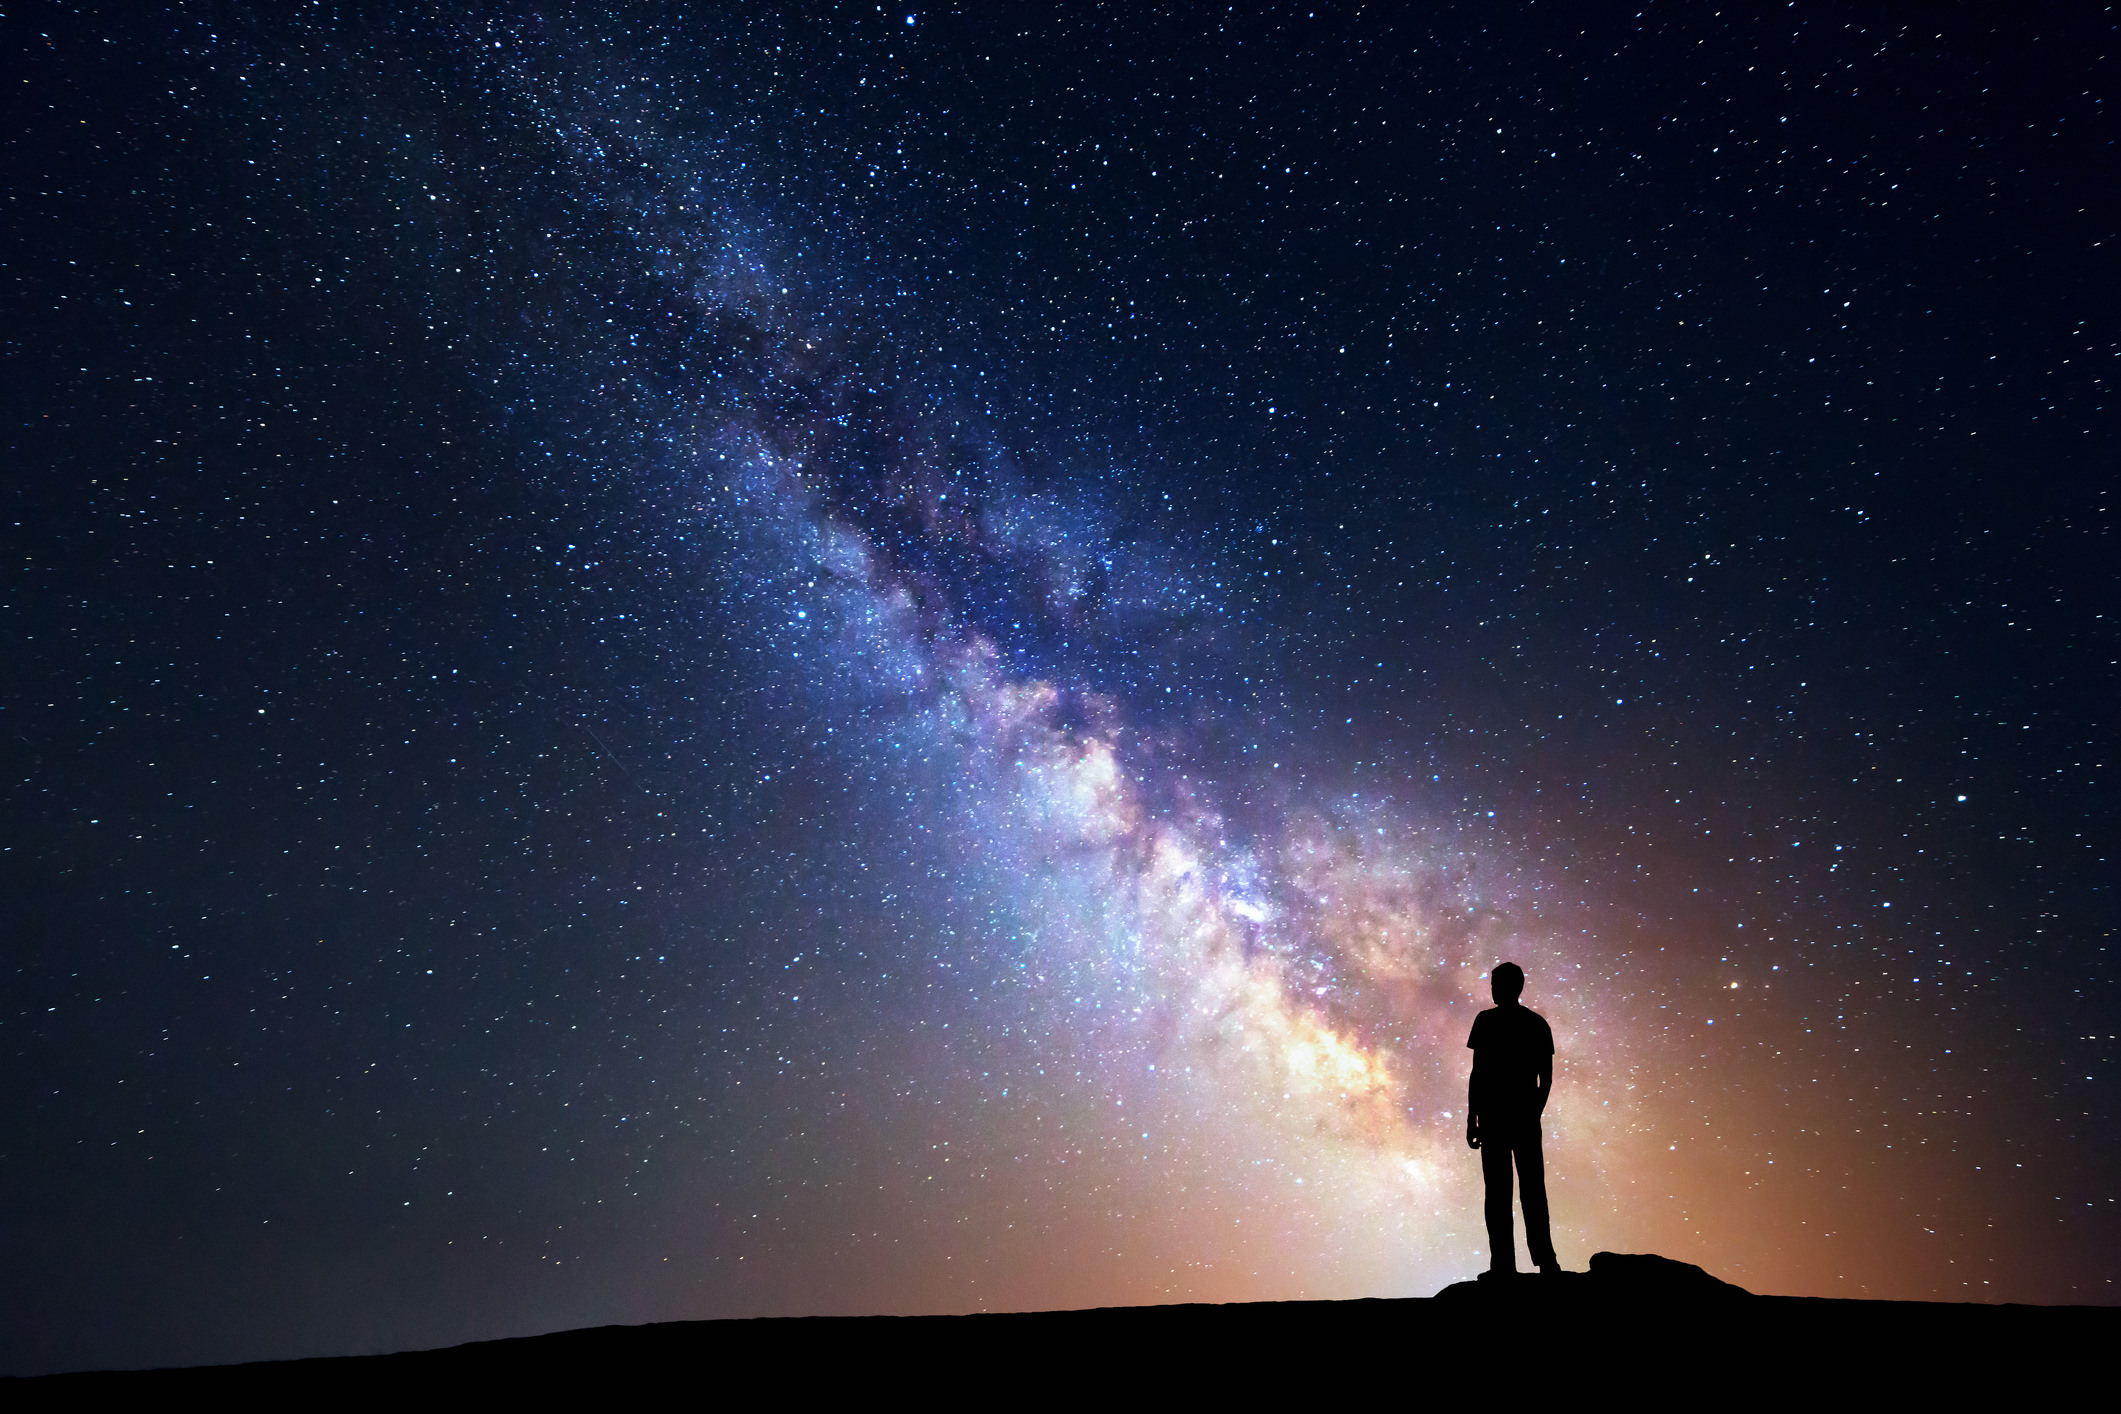 How to Plan, Shoot, and Edit Photos of the Milky Way